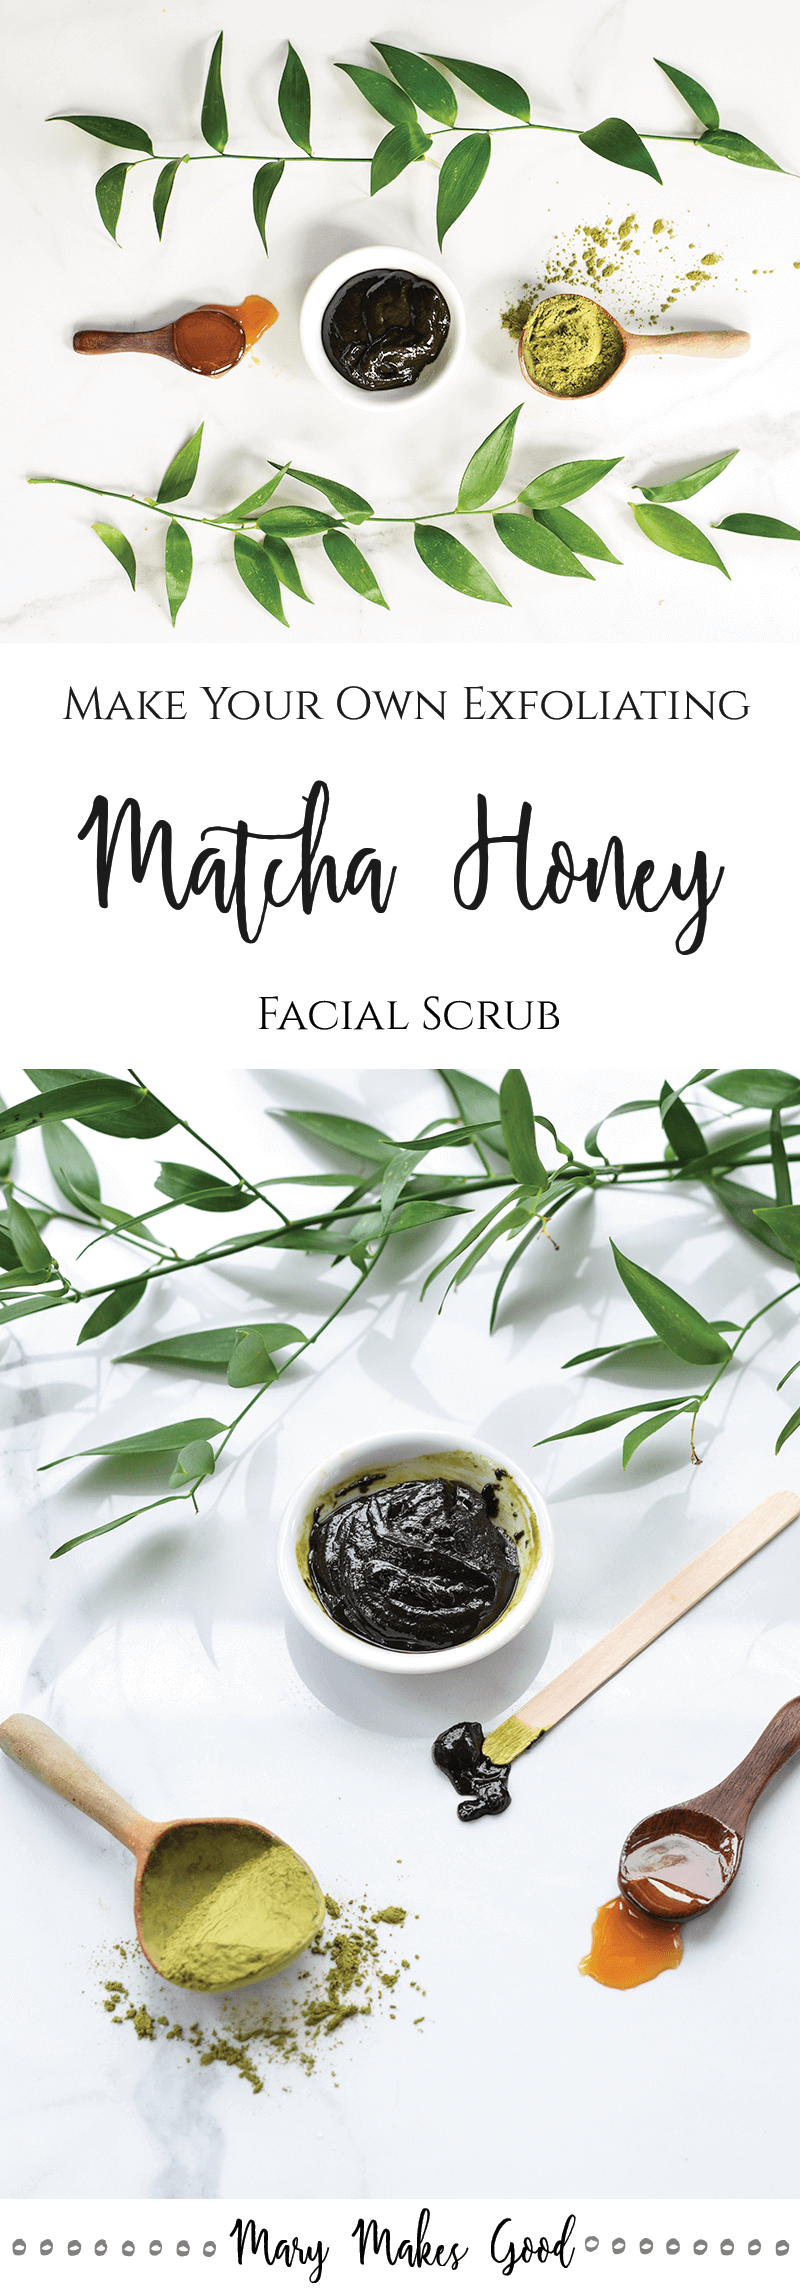 Make Your Own Match Honey Facial Scrub - A simple, three ingredient recipe